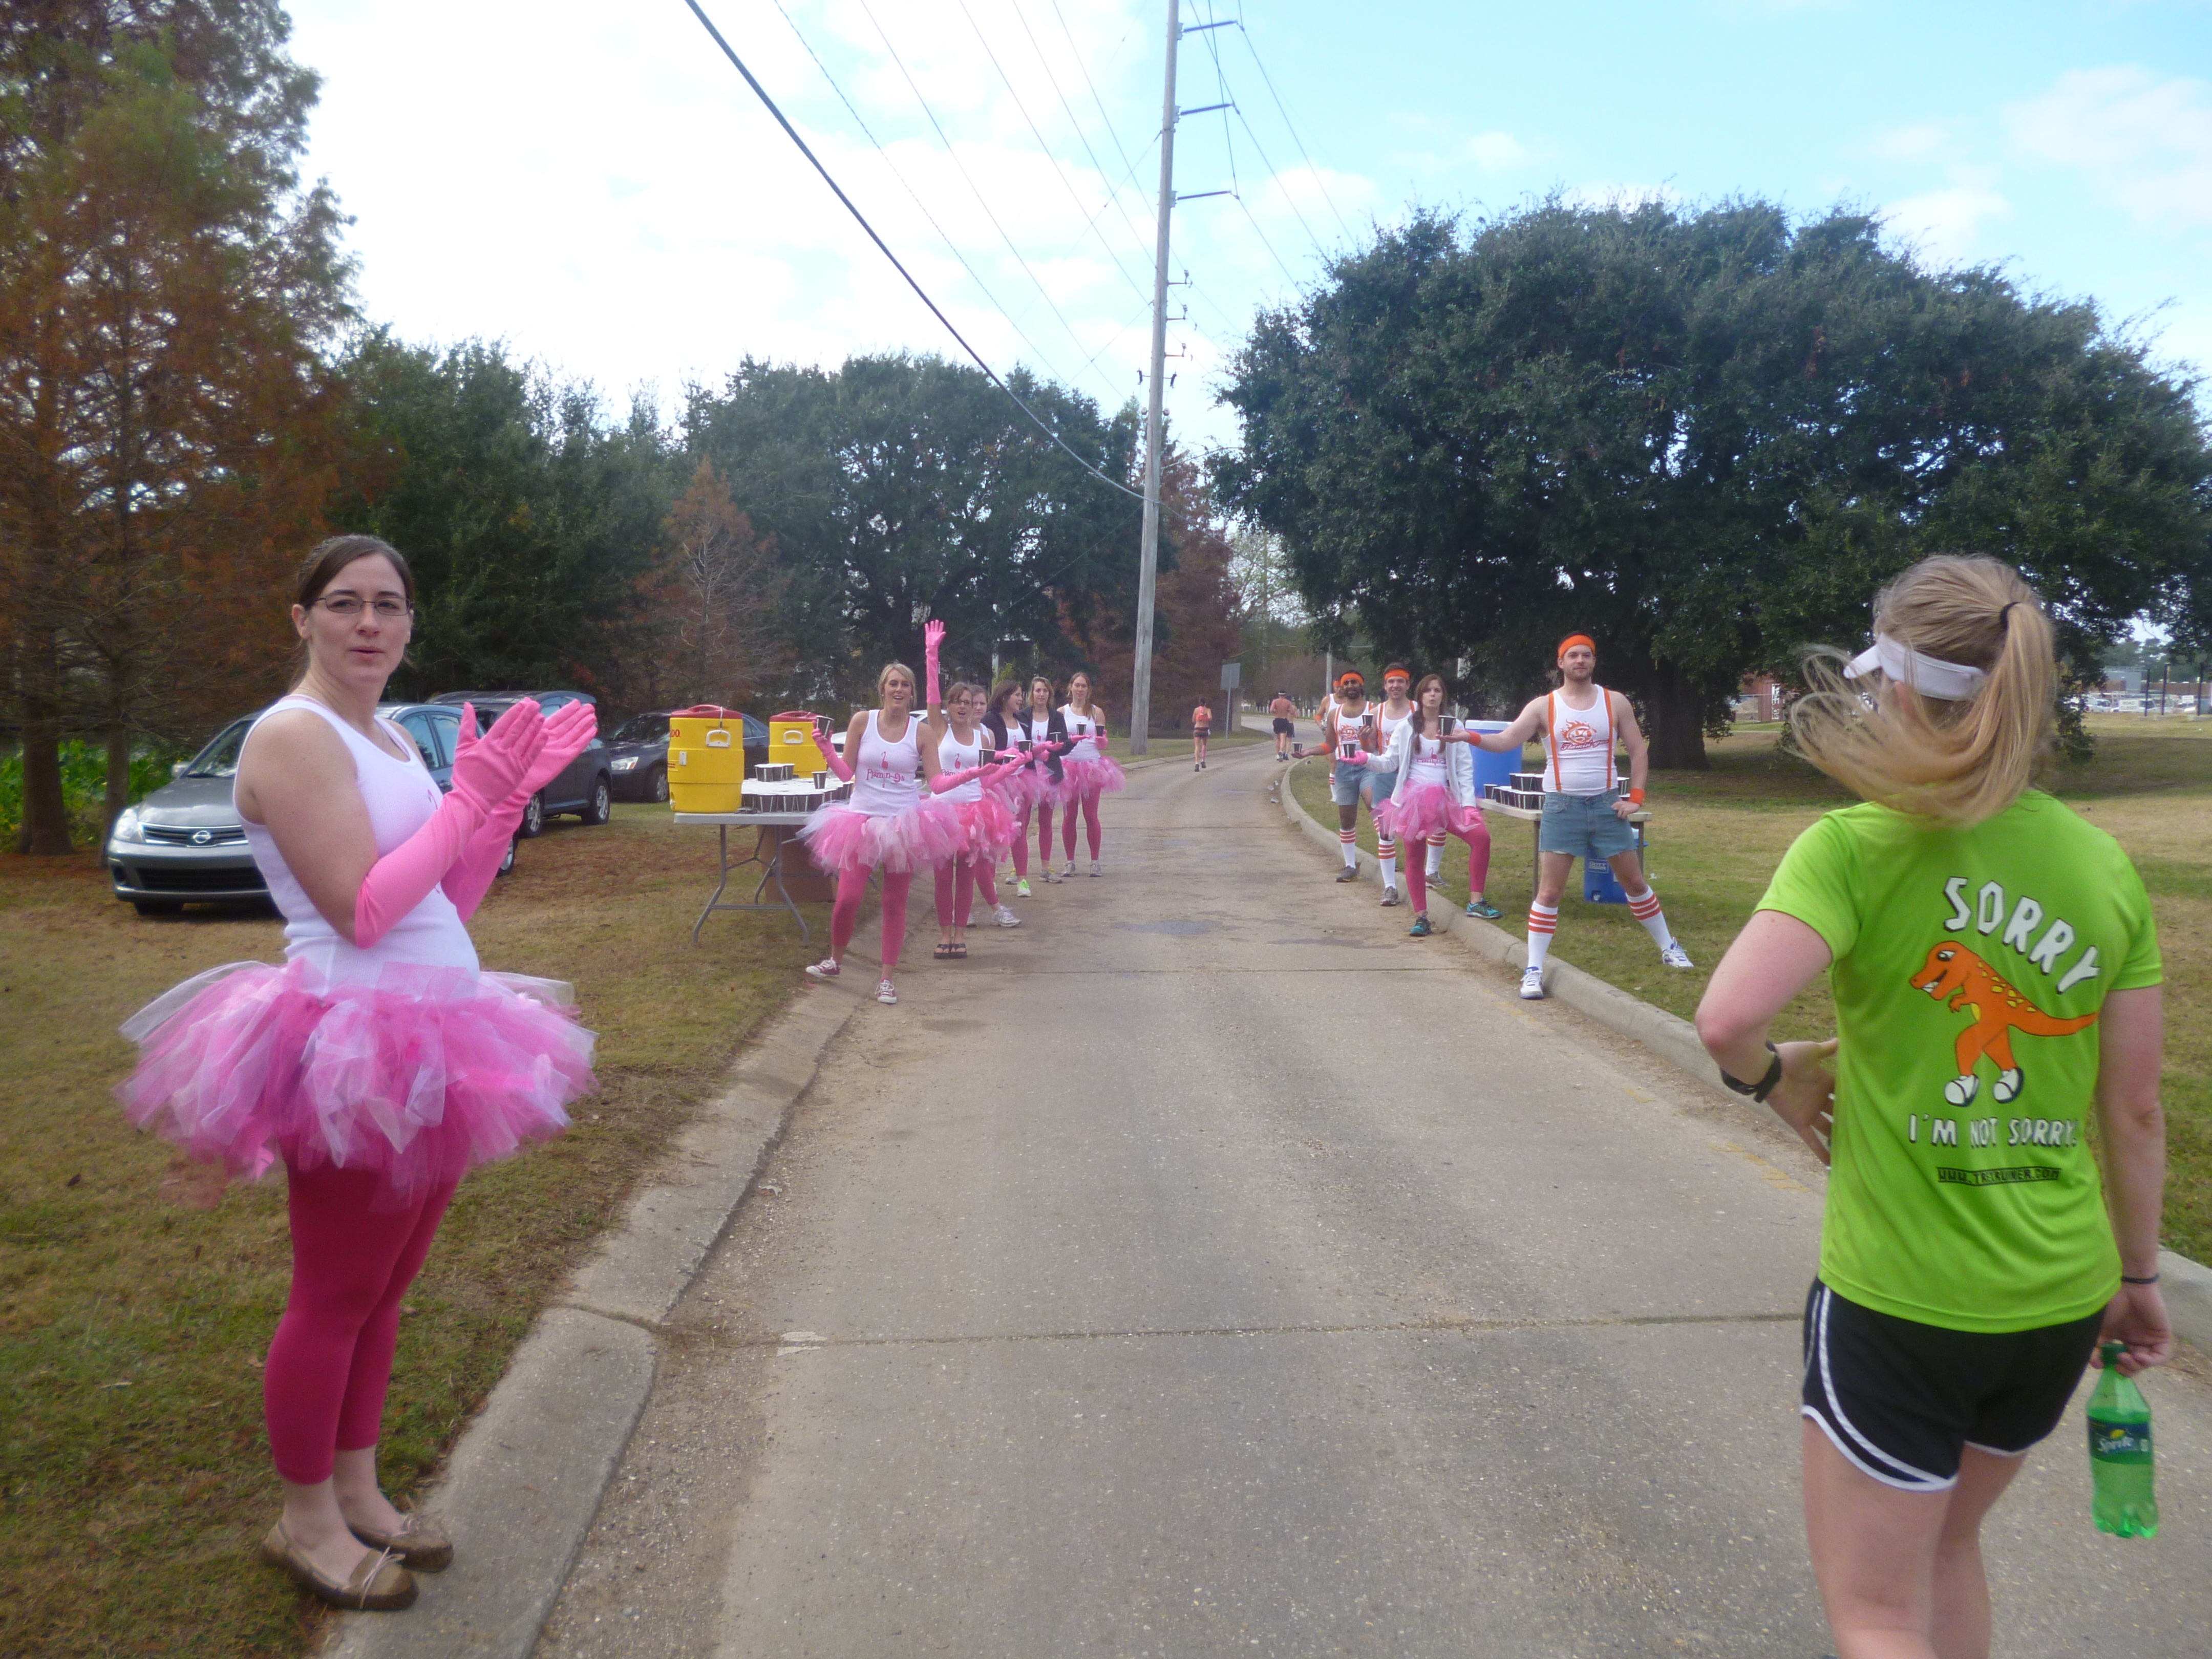 And the award for best water stop goes to the people in tutus, jorts, and suspenders.